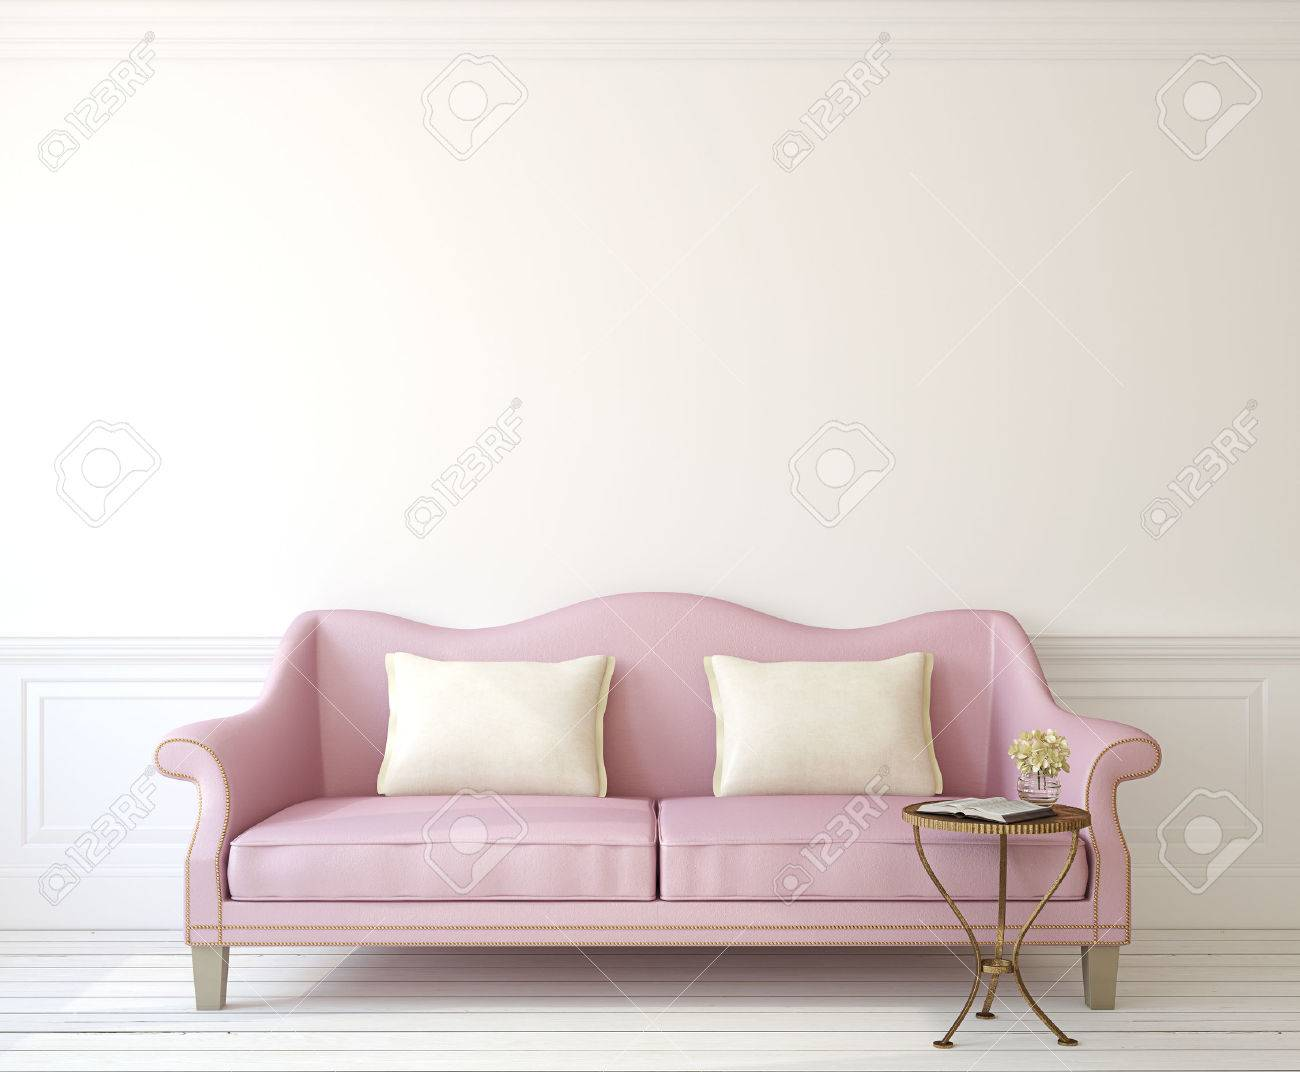 Romantic Interior With Pink Couch Near Empty White Wall. 3d Render. Stock  Photo